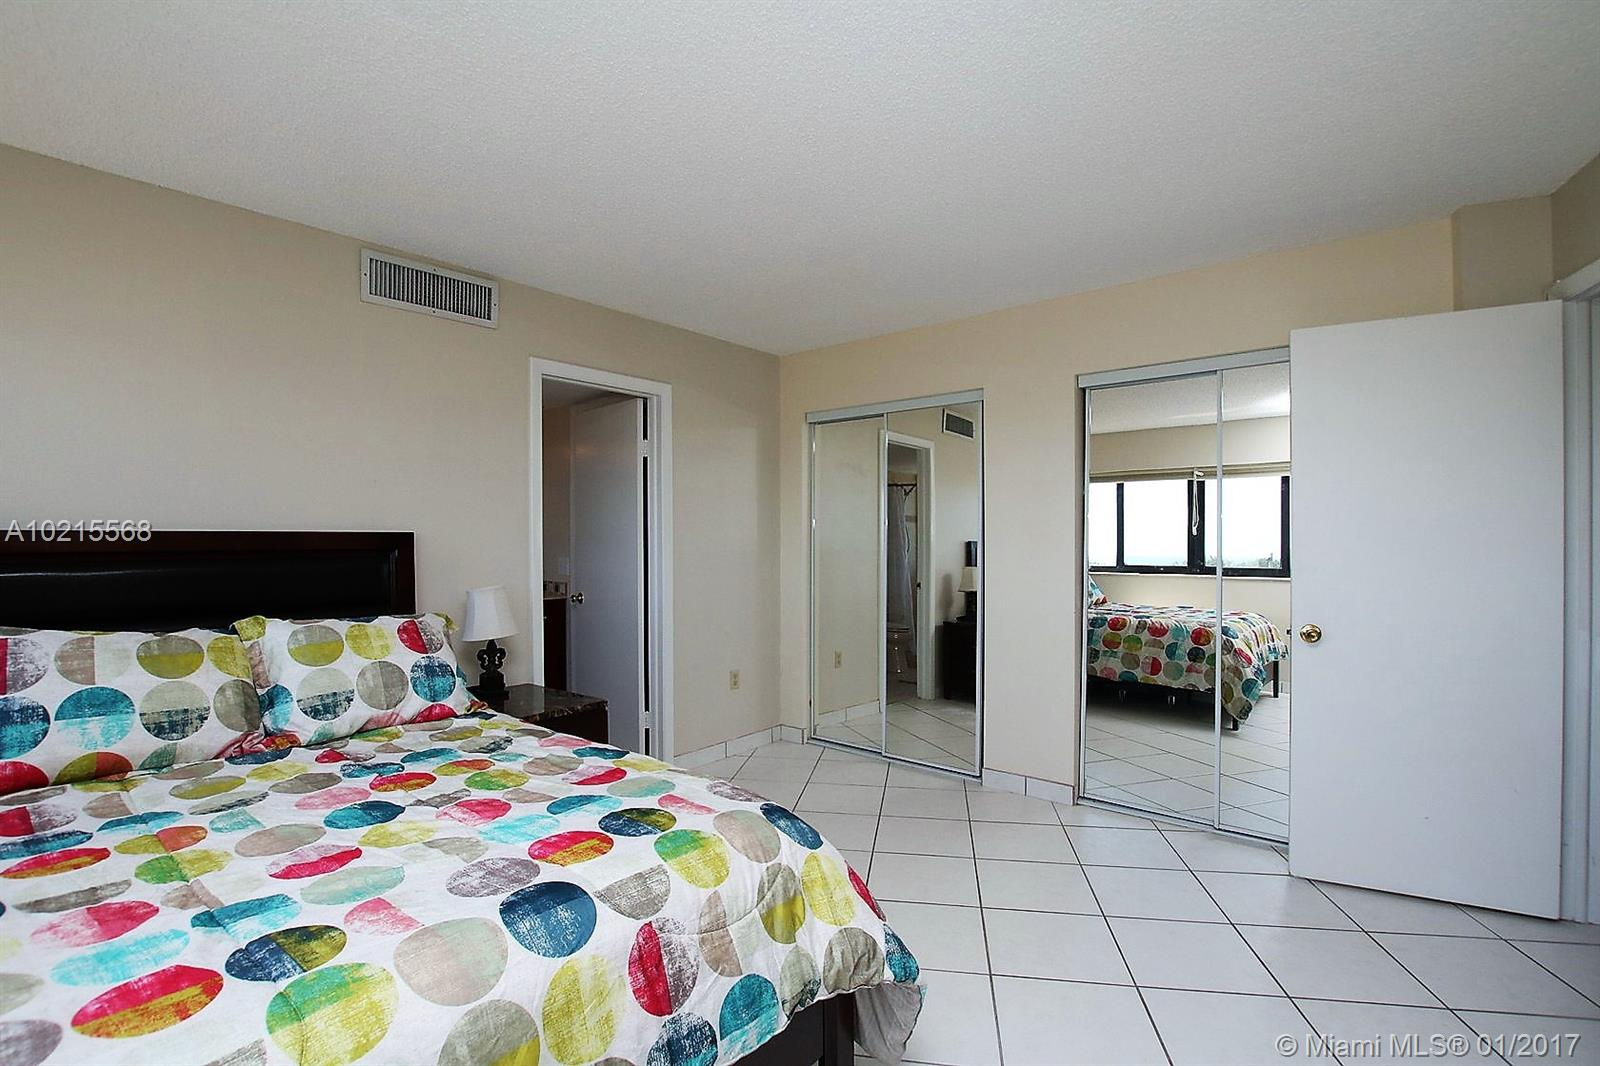 1530 Ocean bay dr-410 other-city---keys/islands/caribbean--fl-33037-a10215568-Pic18